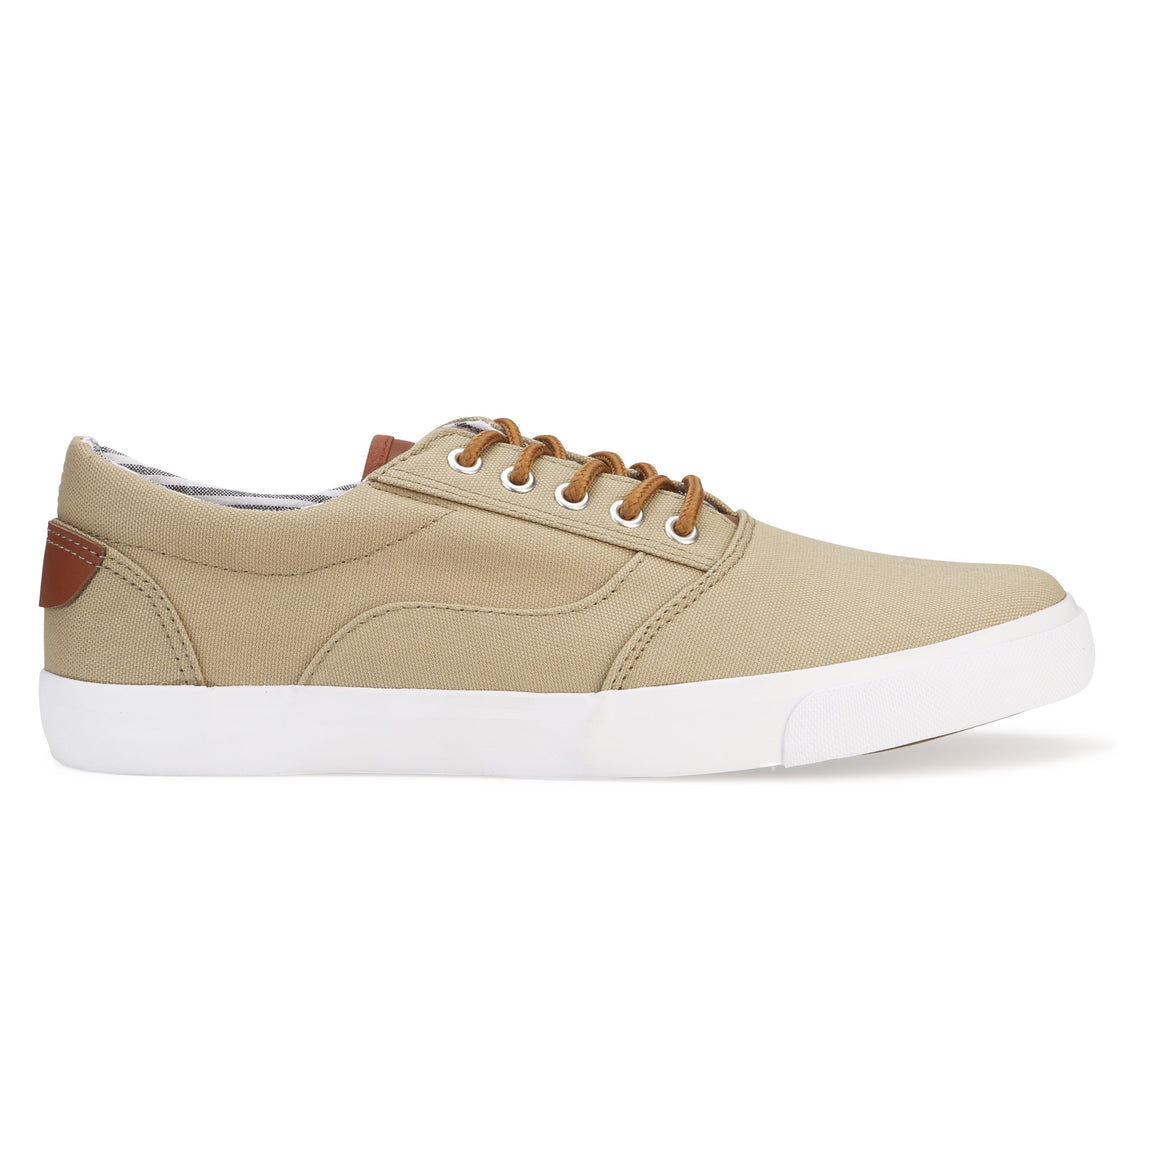 Xray Men's The Bishorn Casual Low-top Sneakers KHAKI - S3 Holding